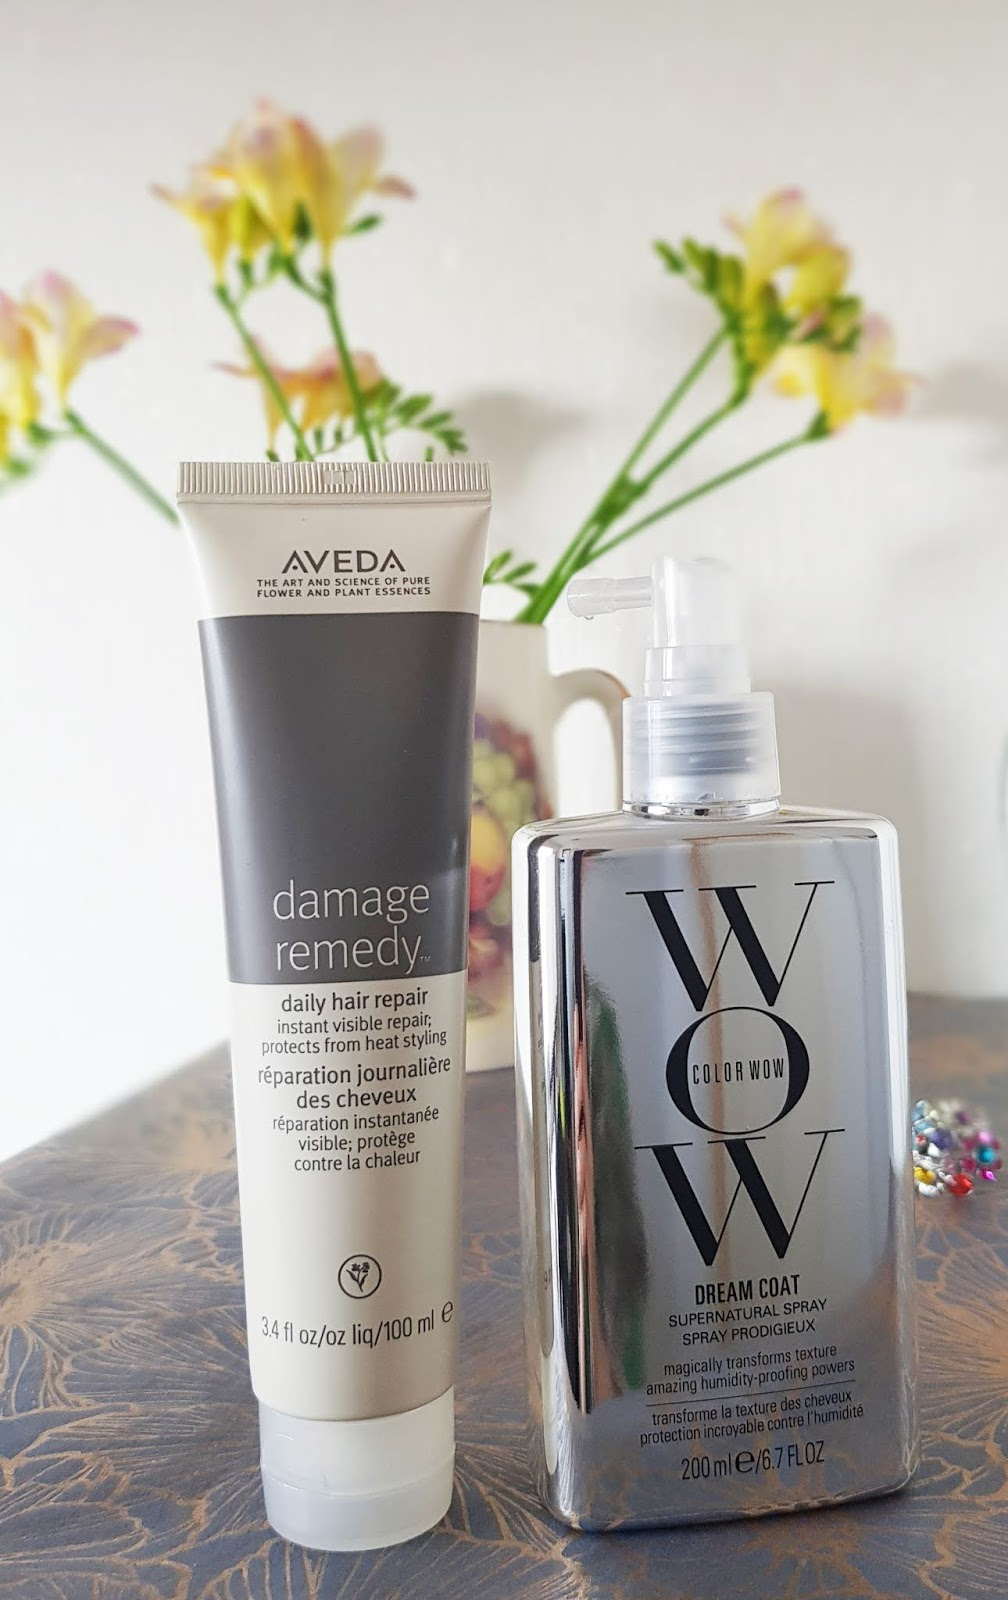 Is This Mutton? reviews Damage Remedy from Aveda and ColourWow Dreamcoat